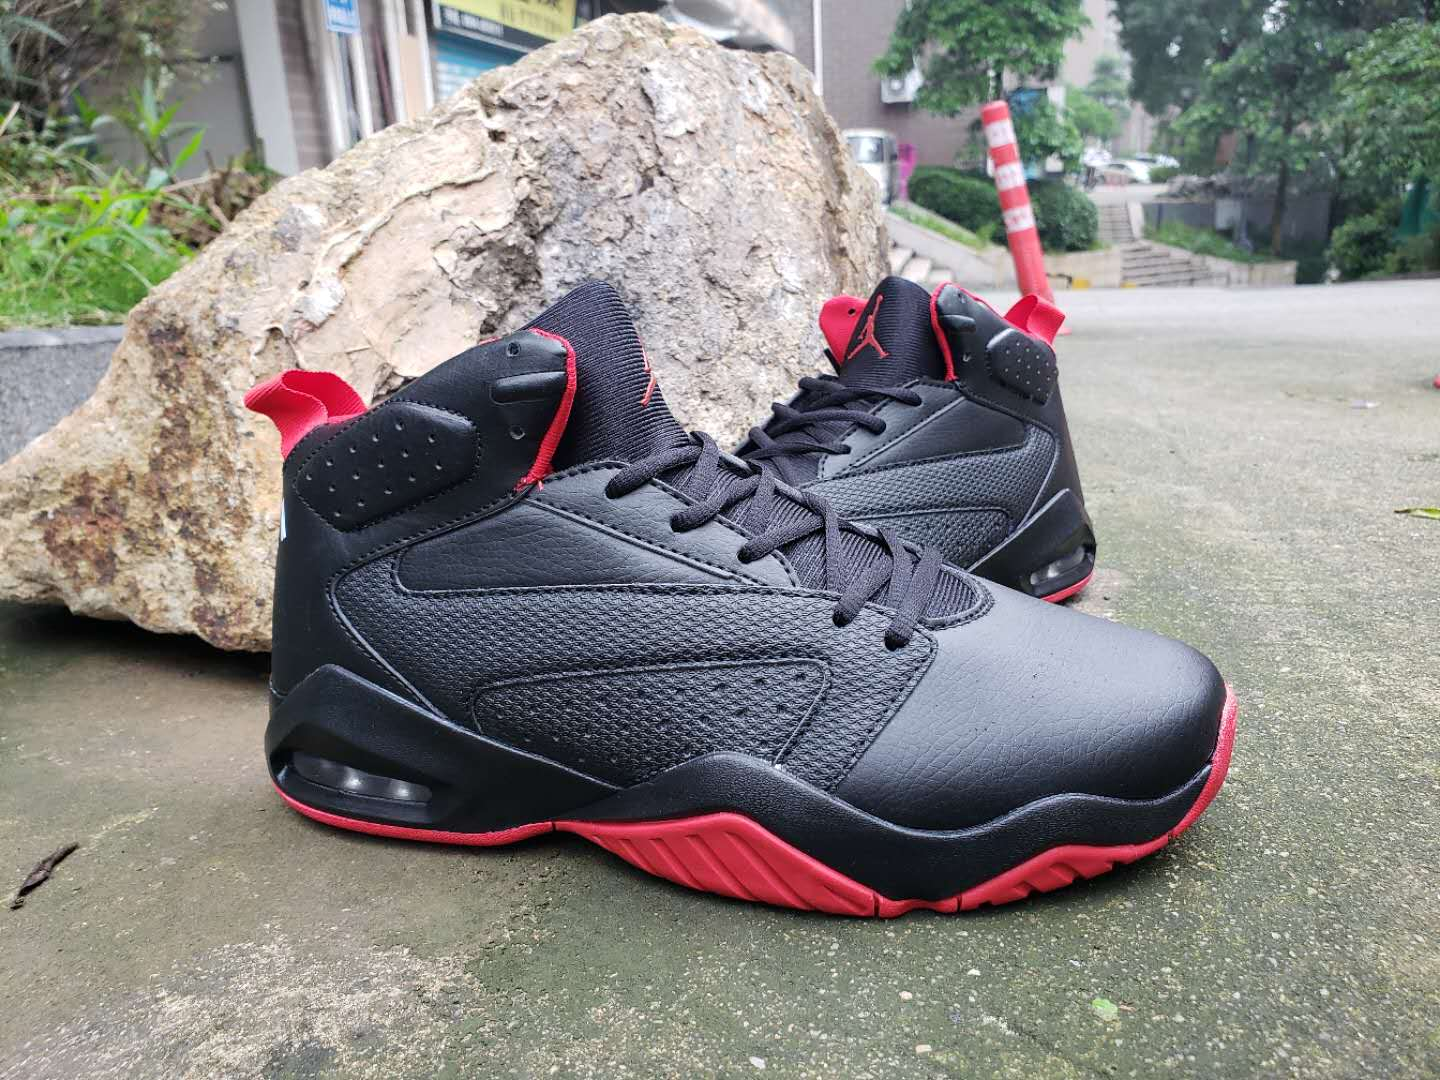 Air Jordan Lift Off AJ6 Black Red Shoes